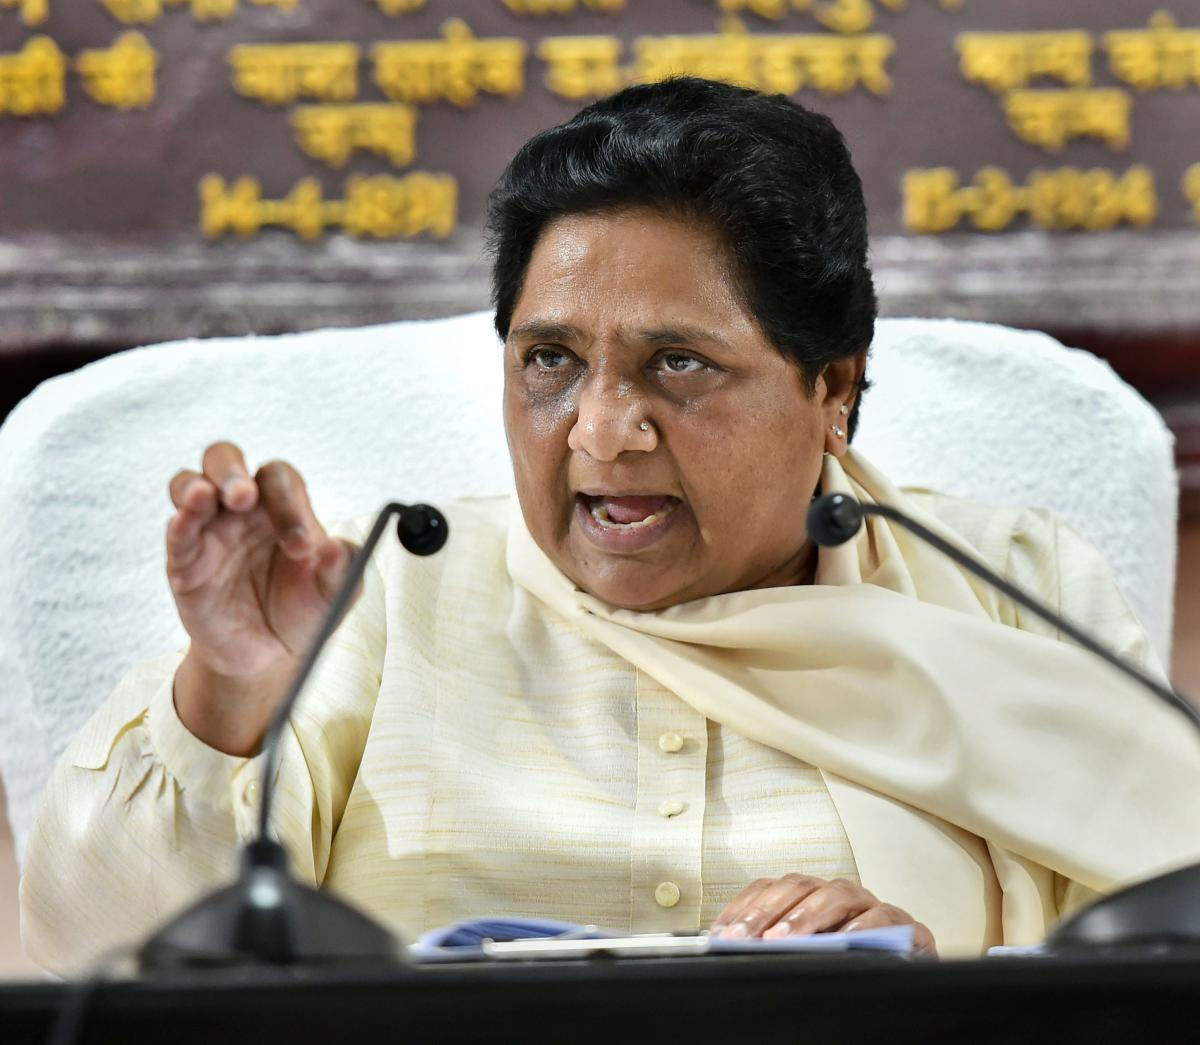 """The BSP chief also said that instances of mob lynching in the name of cow protection were a """"blot on democracy"""" and accused BJP governments in various states of being indifferent to the problem. (PTI Photo)"""